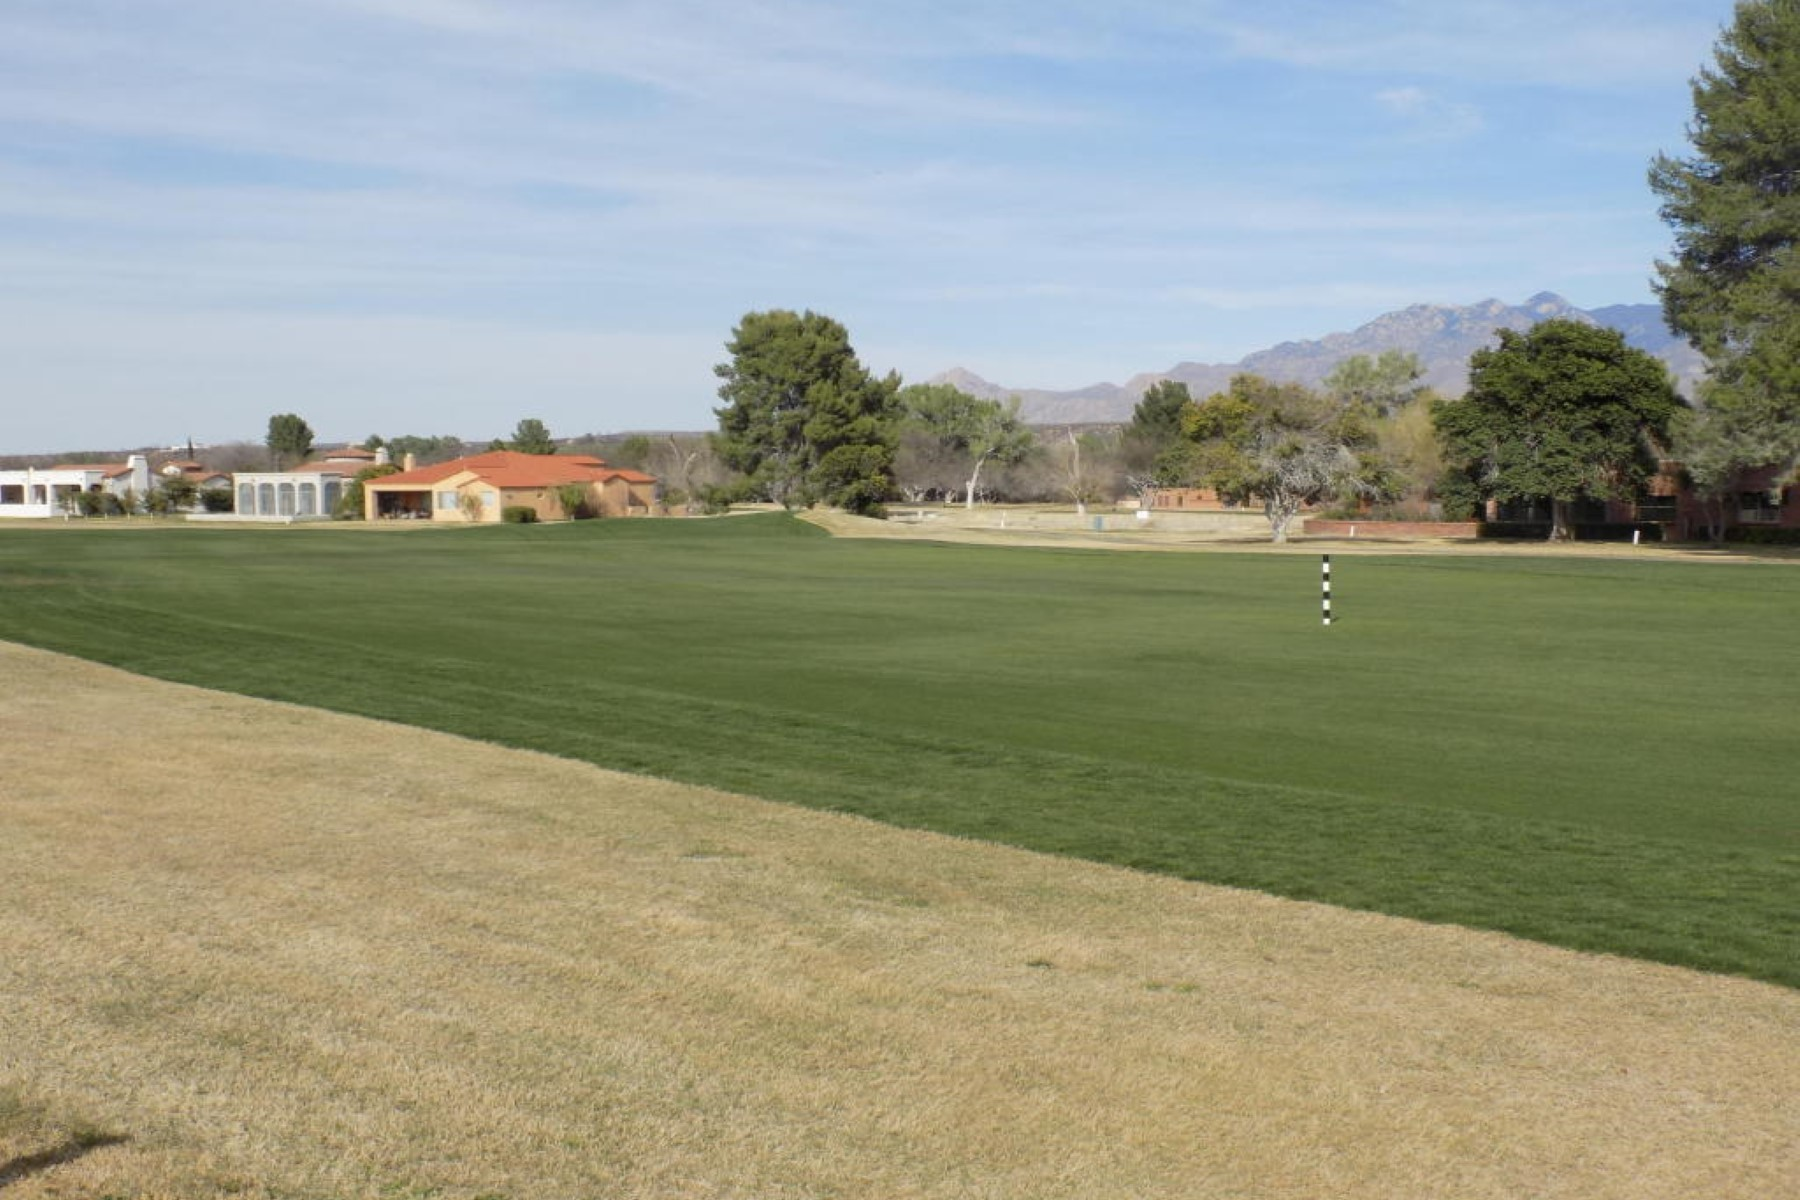 Land for Sale at Golf Course Fairway lots in the Tubac Golf Resort 76 Via Campestre Tubac, Arizona, 85646 United States